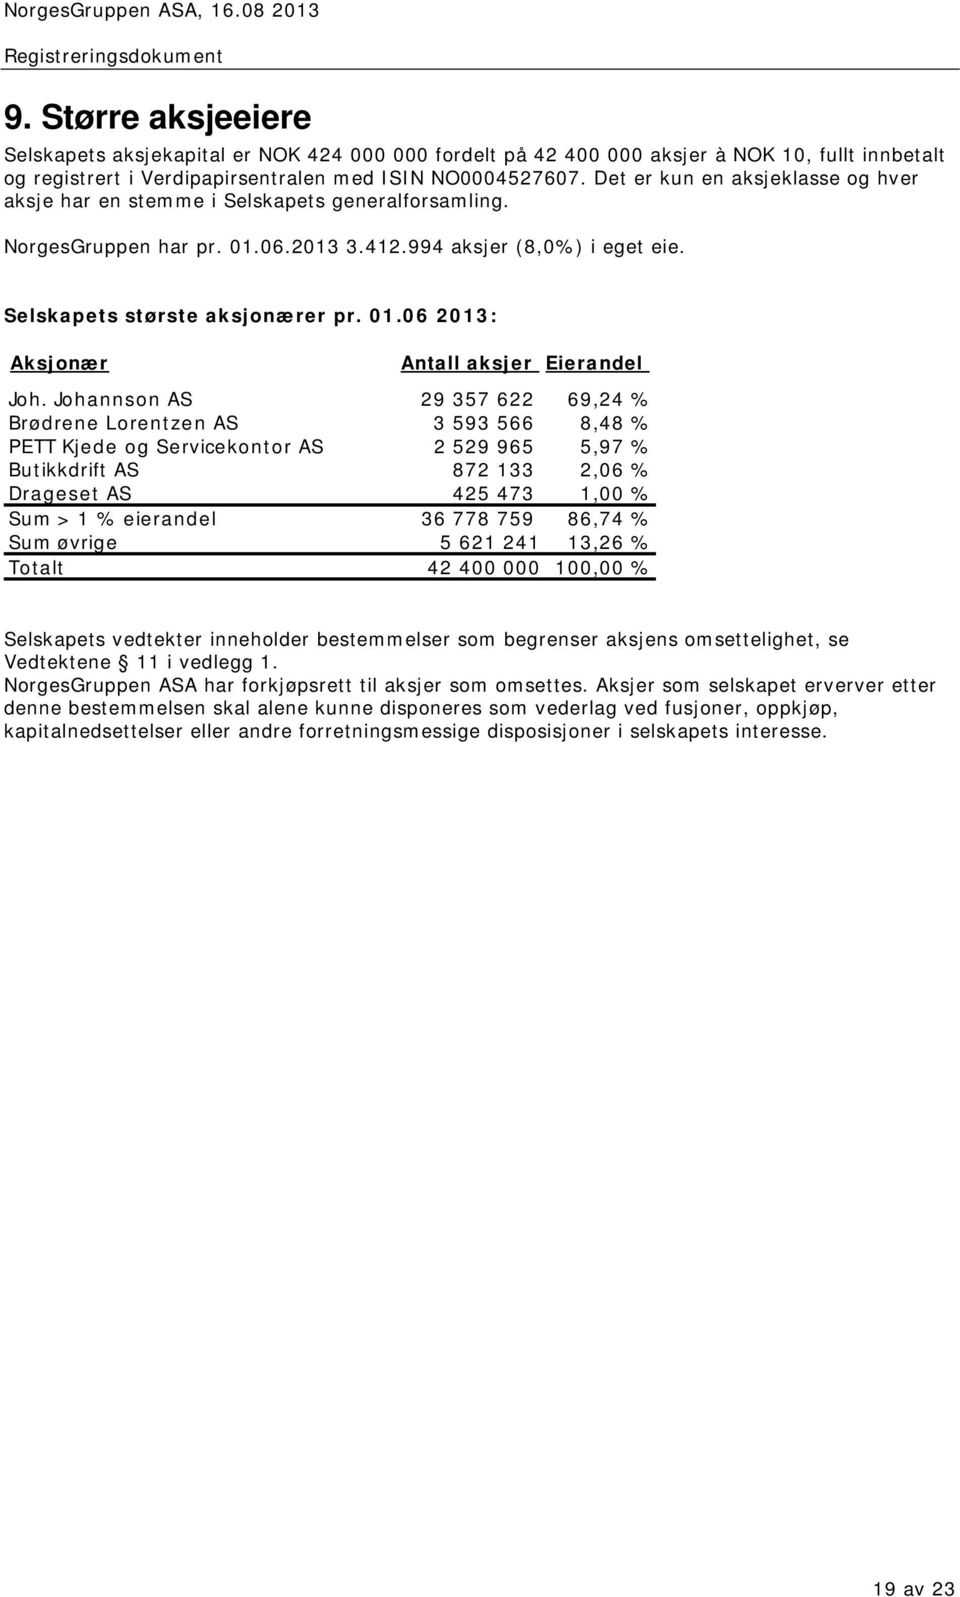 Johannson AS 29 357 622 69,24 % Brødrene Lorentzen AS 3 593 566 8,48 % PETT Kjede og Servicekontor AS 2 529 965 5,97 % Butikkdrift AS 872 133 2,06 % Drageset AS 425 473 1,00 % Sum > 1 % eierandel 36